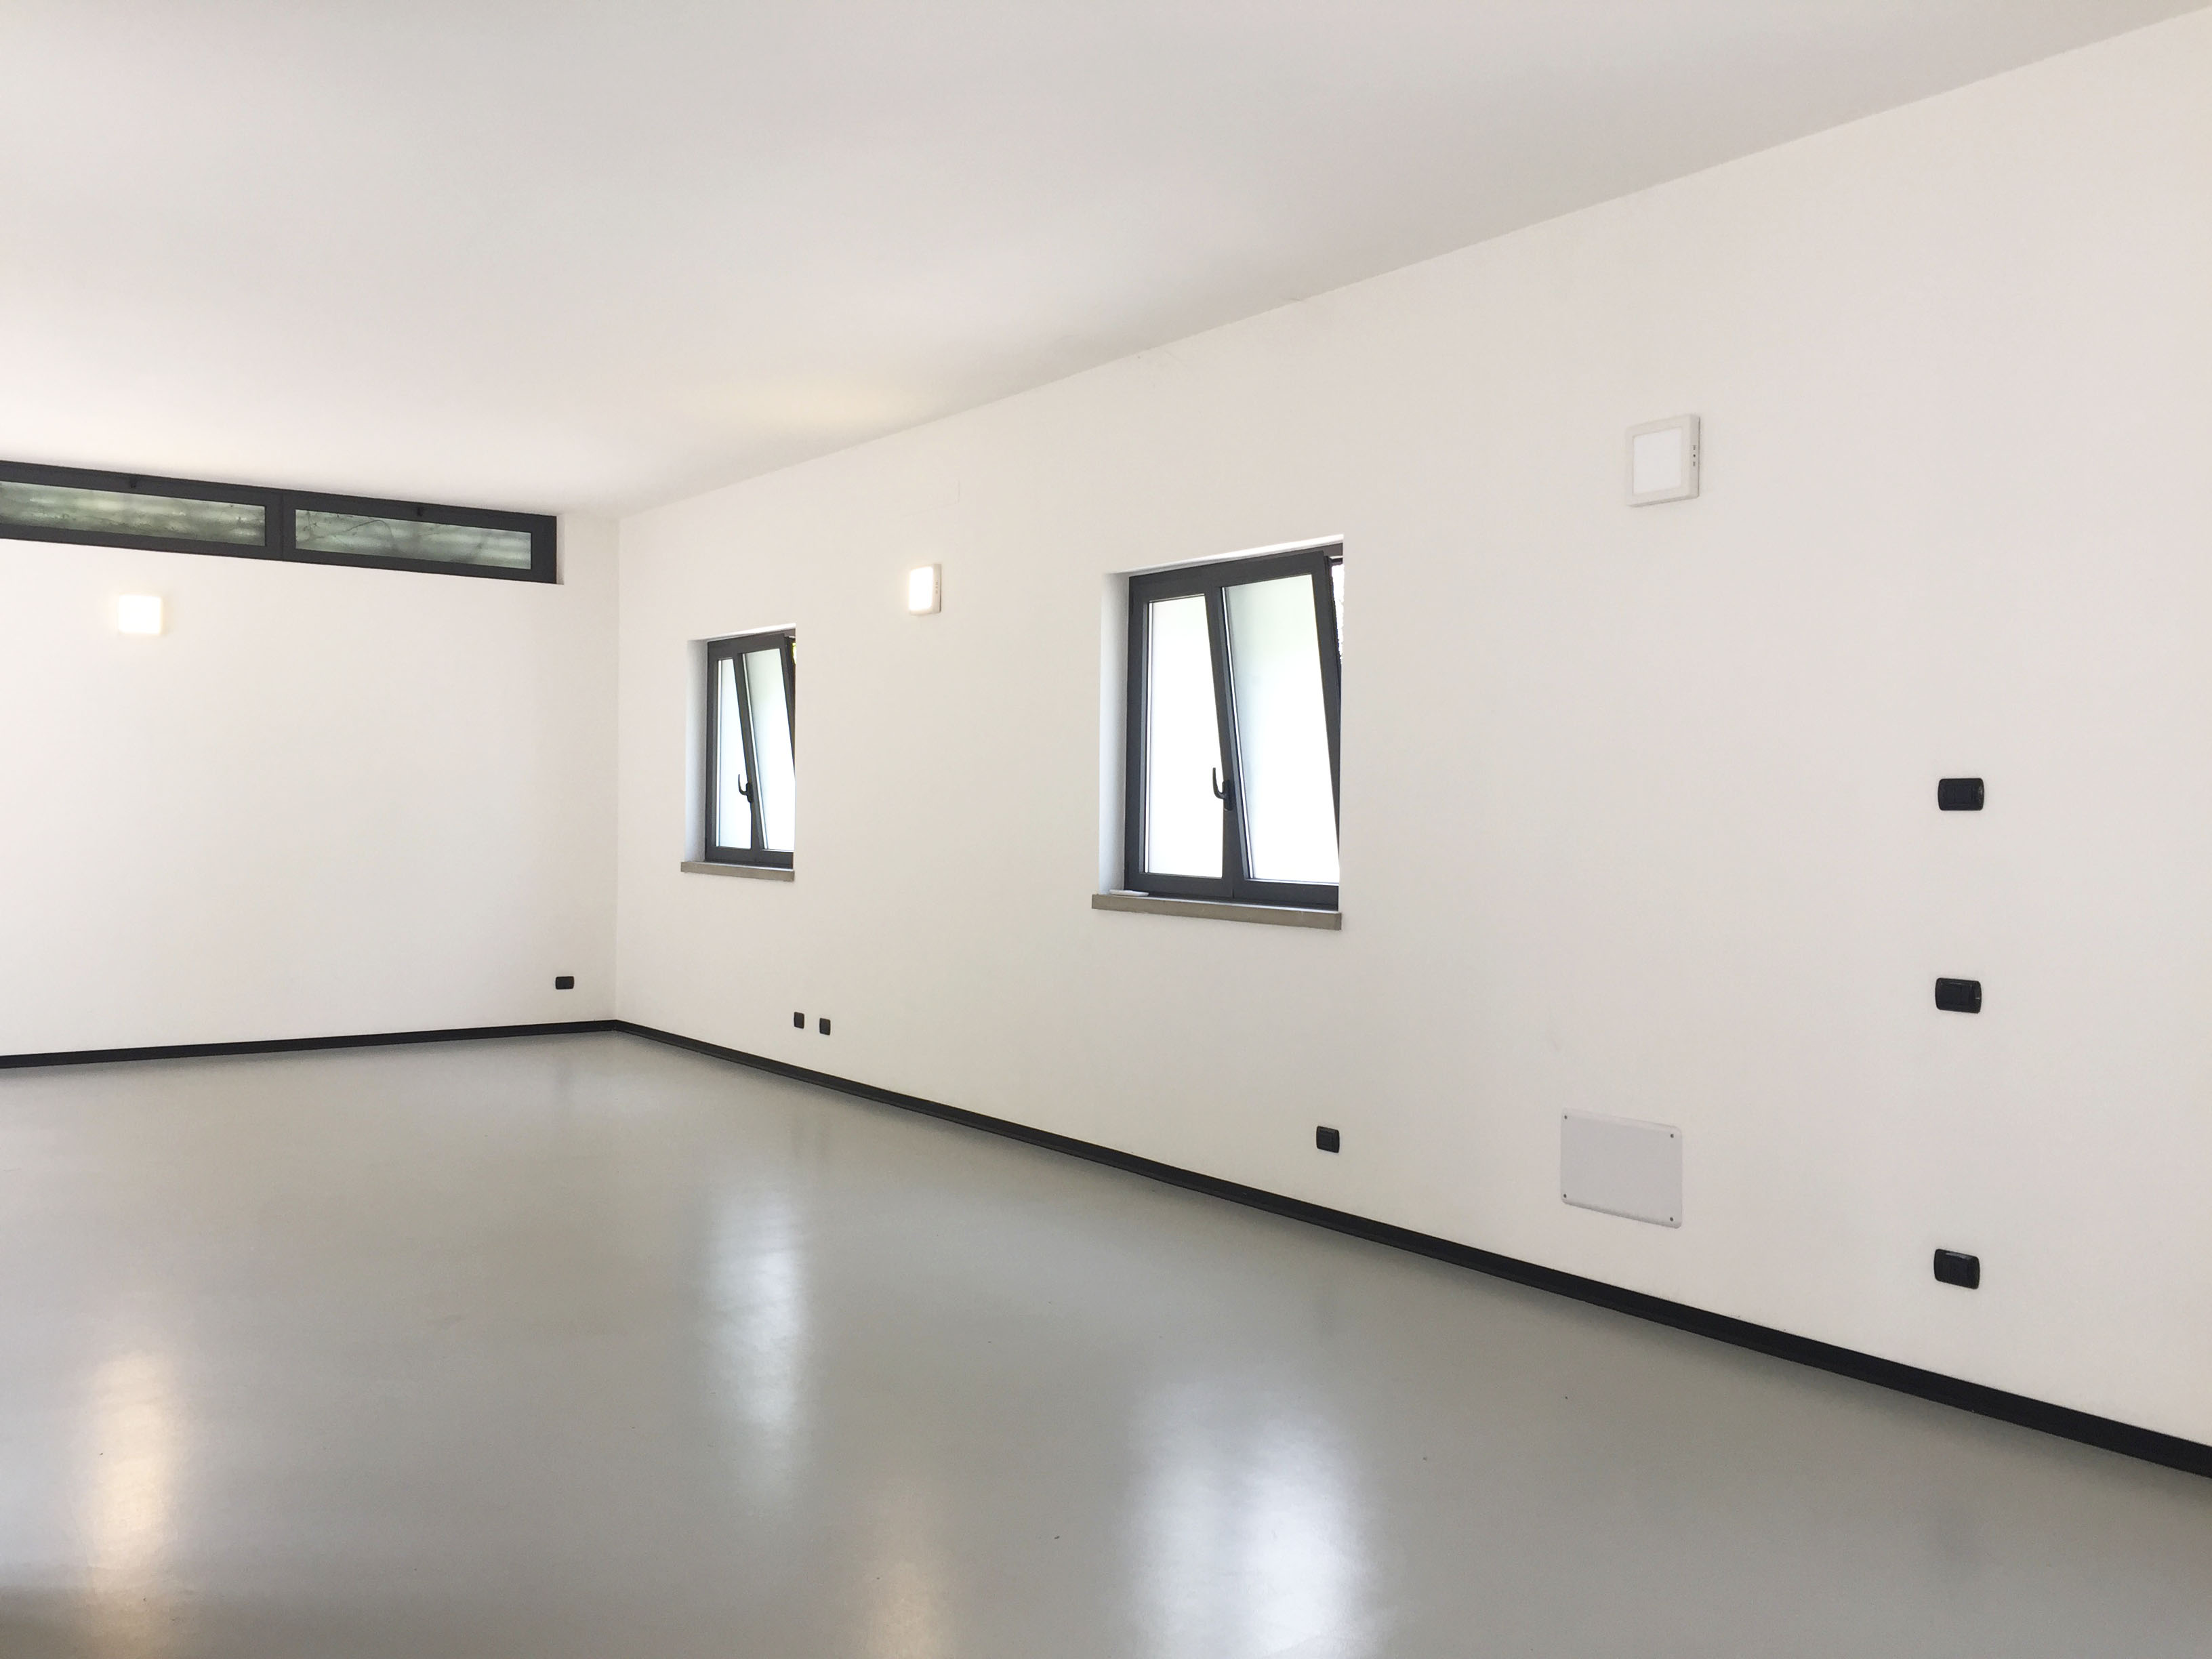 Opificio 31-Fiorditortona - Open space di 70mq in Via Tortona 31 | location disallestita 4